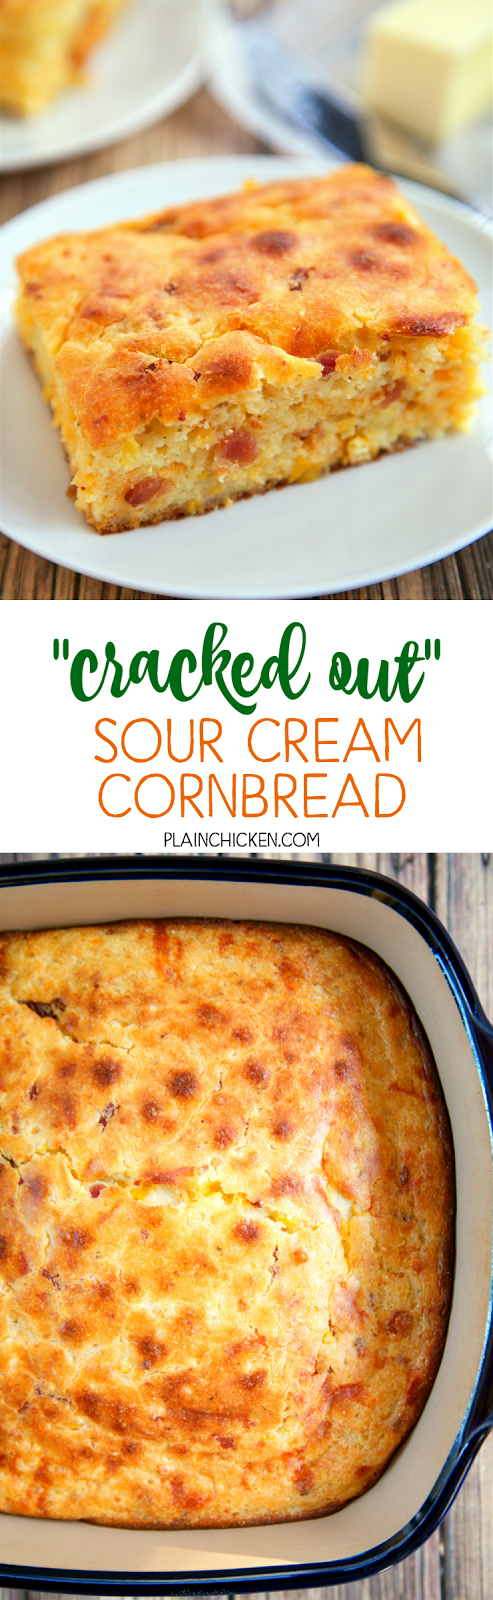 Sour Cream Cornbread - quick cornbread recipe kicked up with cheddar ...